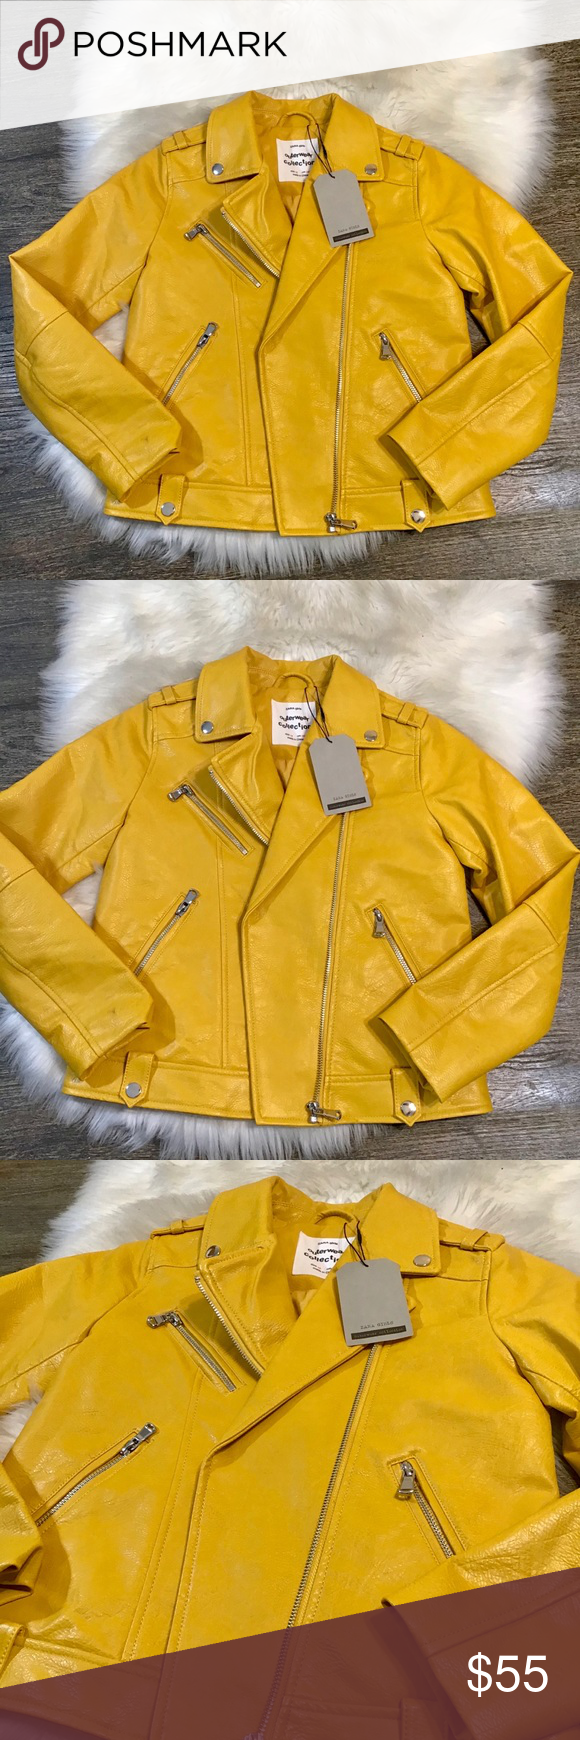 Zara girls yellow faux leather jacket New with tags. Beautiful, vibrant color. Fully lined. Zara Jackets & Coats Jean Jackets